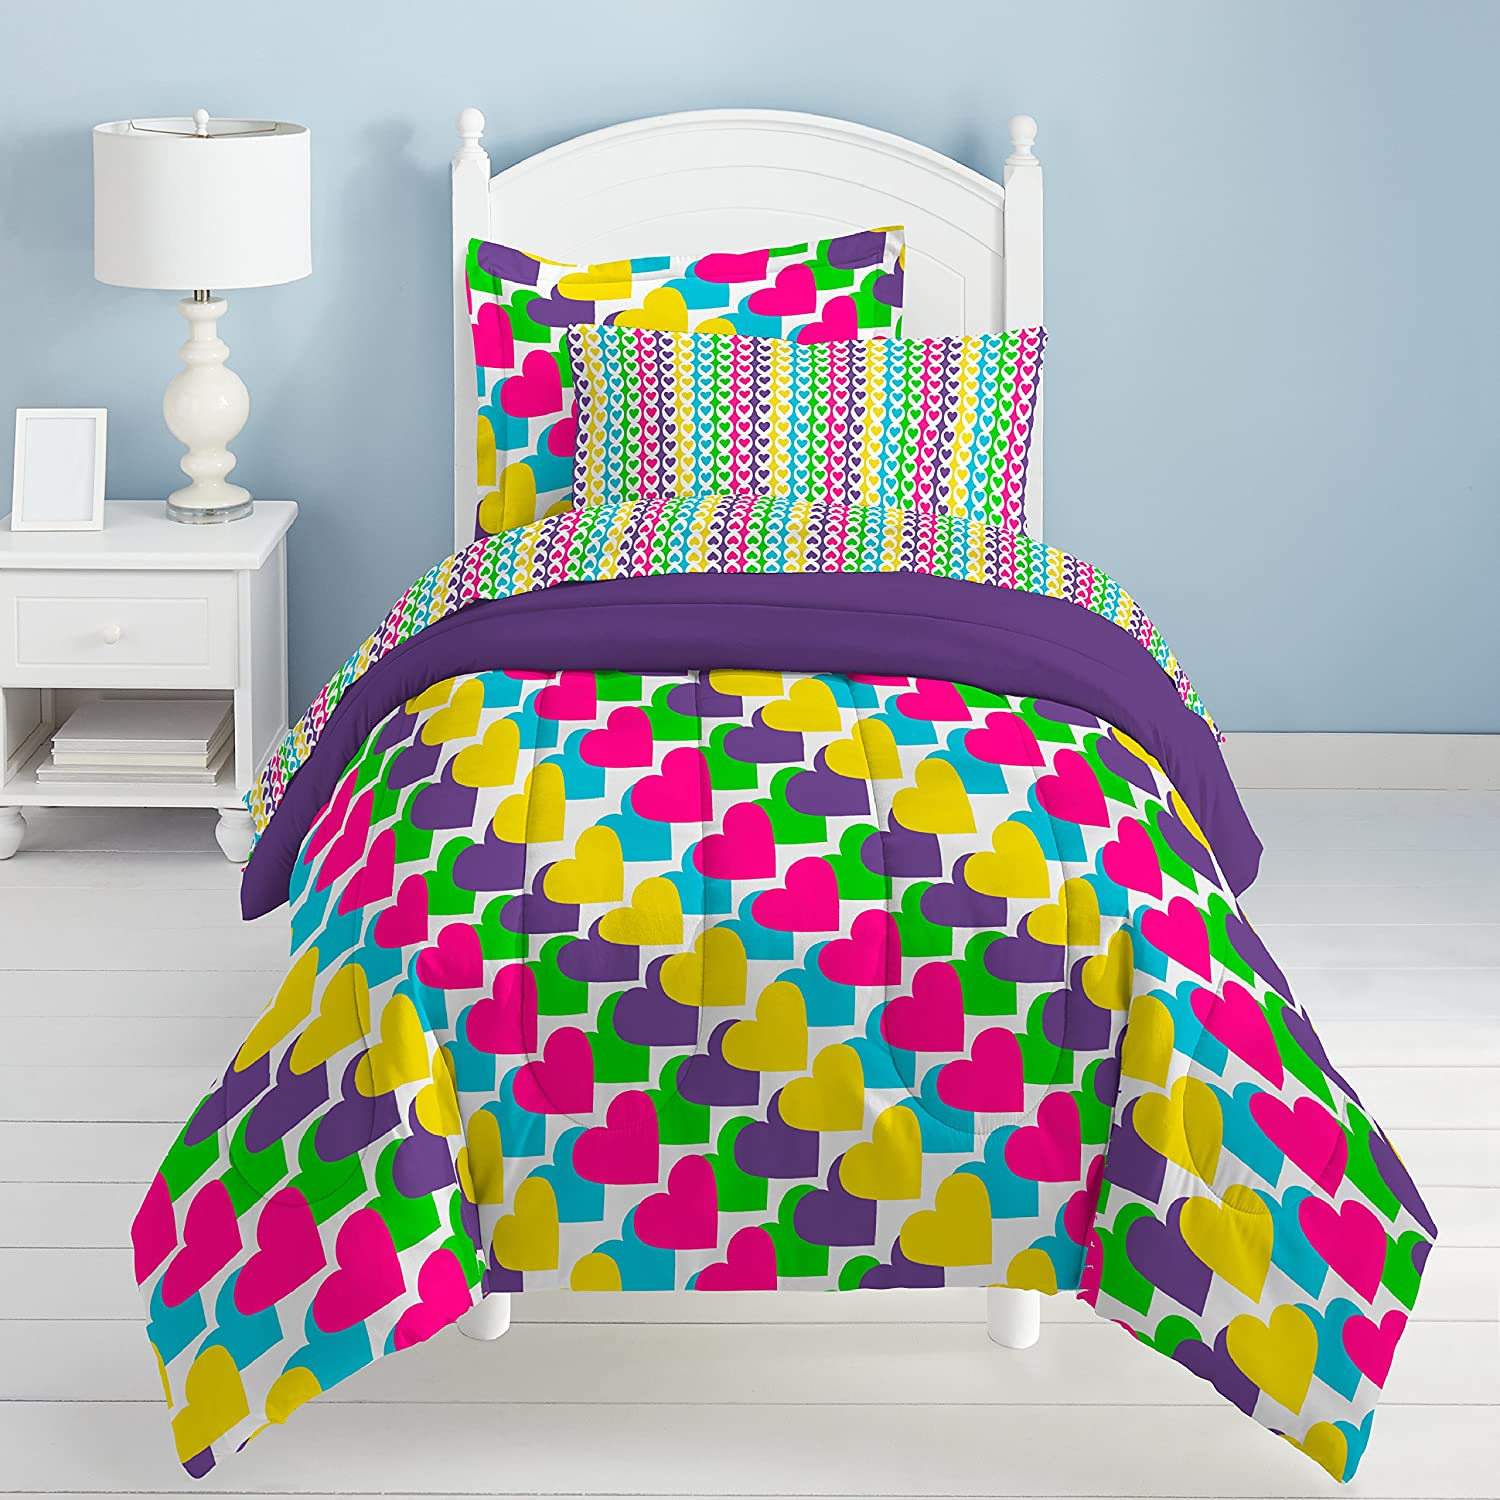 CA 5 Piece Kids Girls Hearts Rainbows Comforter Twin Set, Teal Blue Pink Bedding Purple Yellow Vibrant Green White Love Heart Shapes Pattern Pretty, Polyester